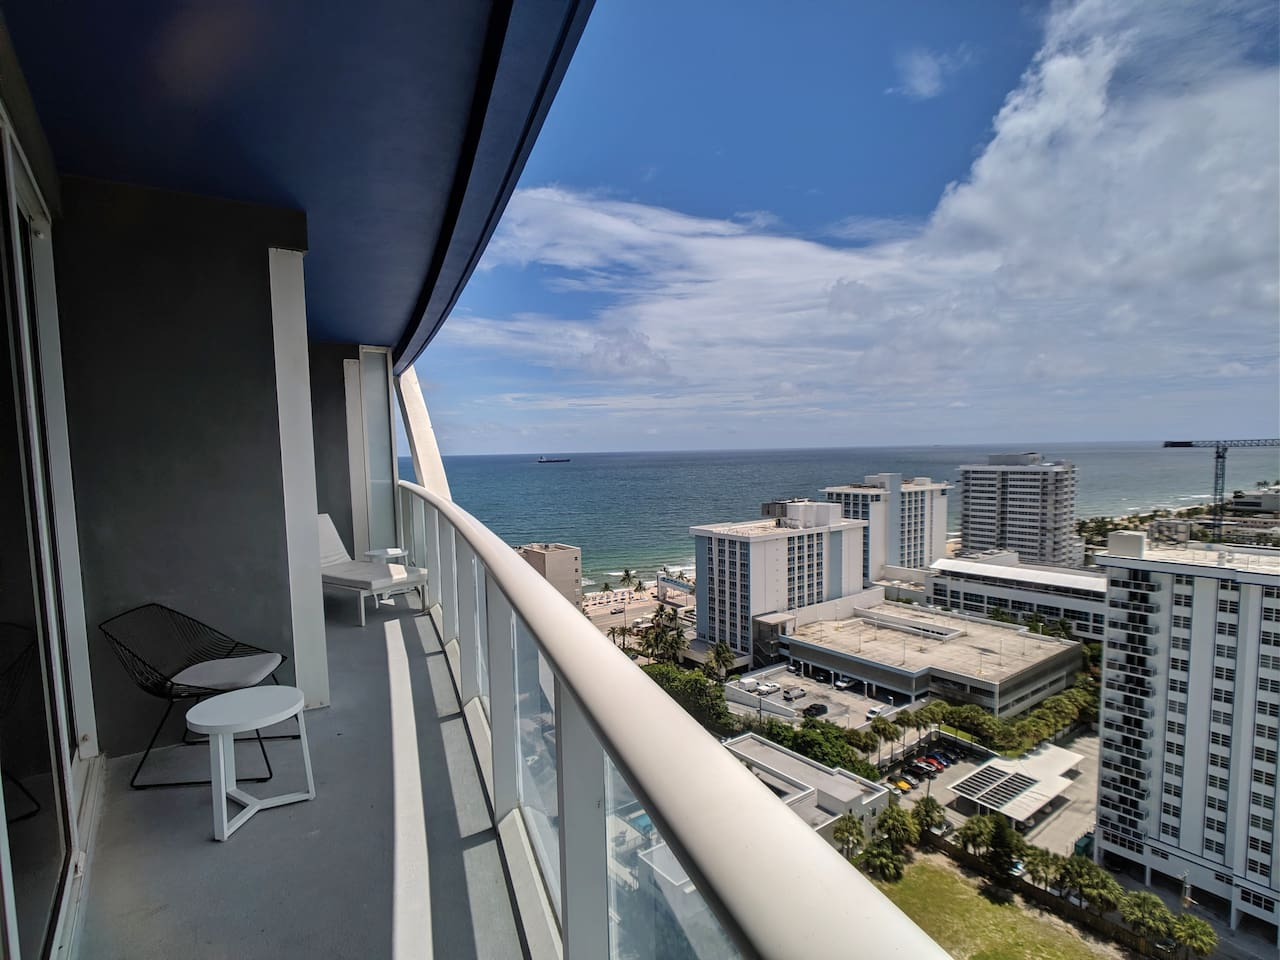 Balcony: Southwest facing to ocean views